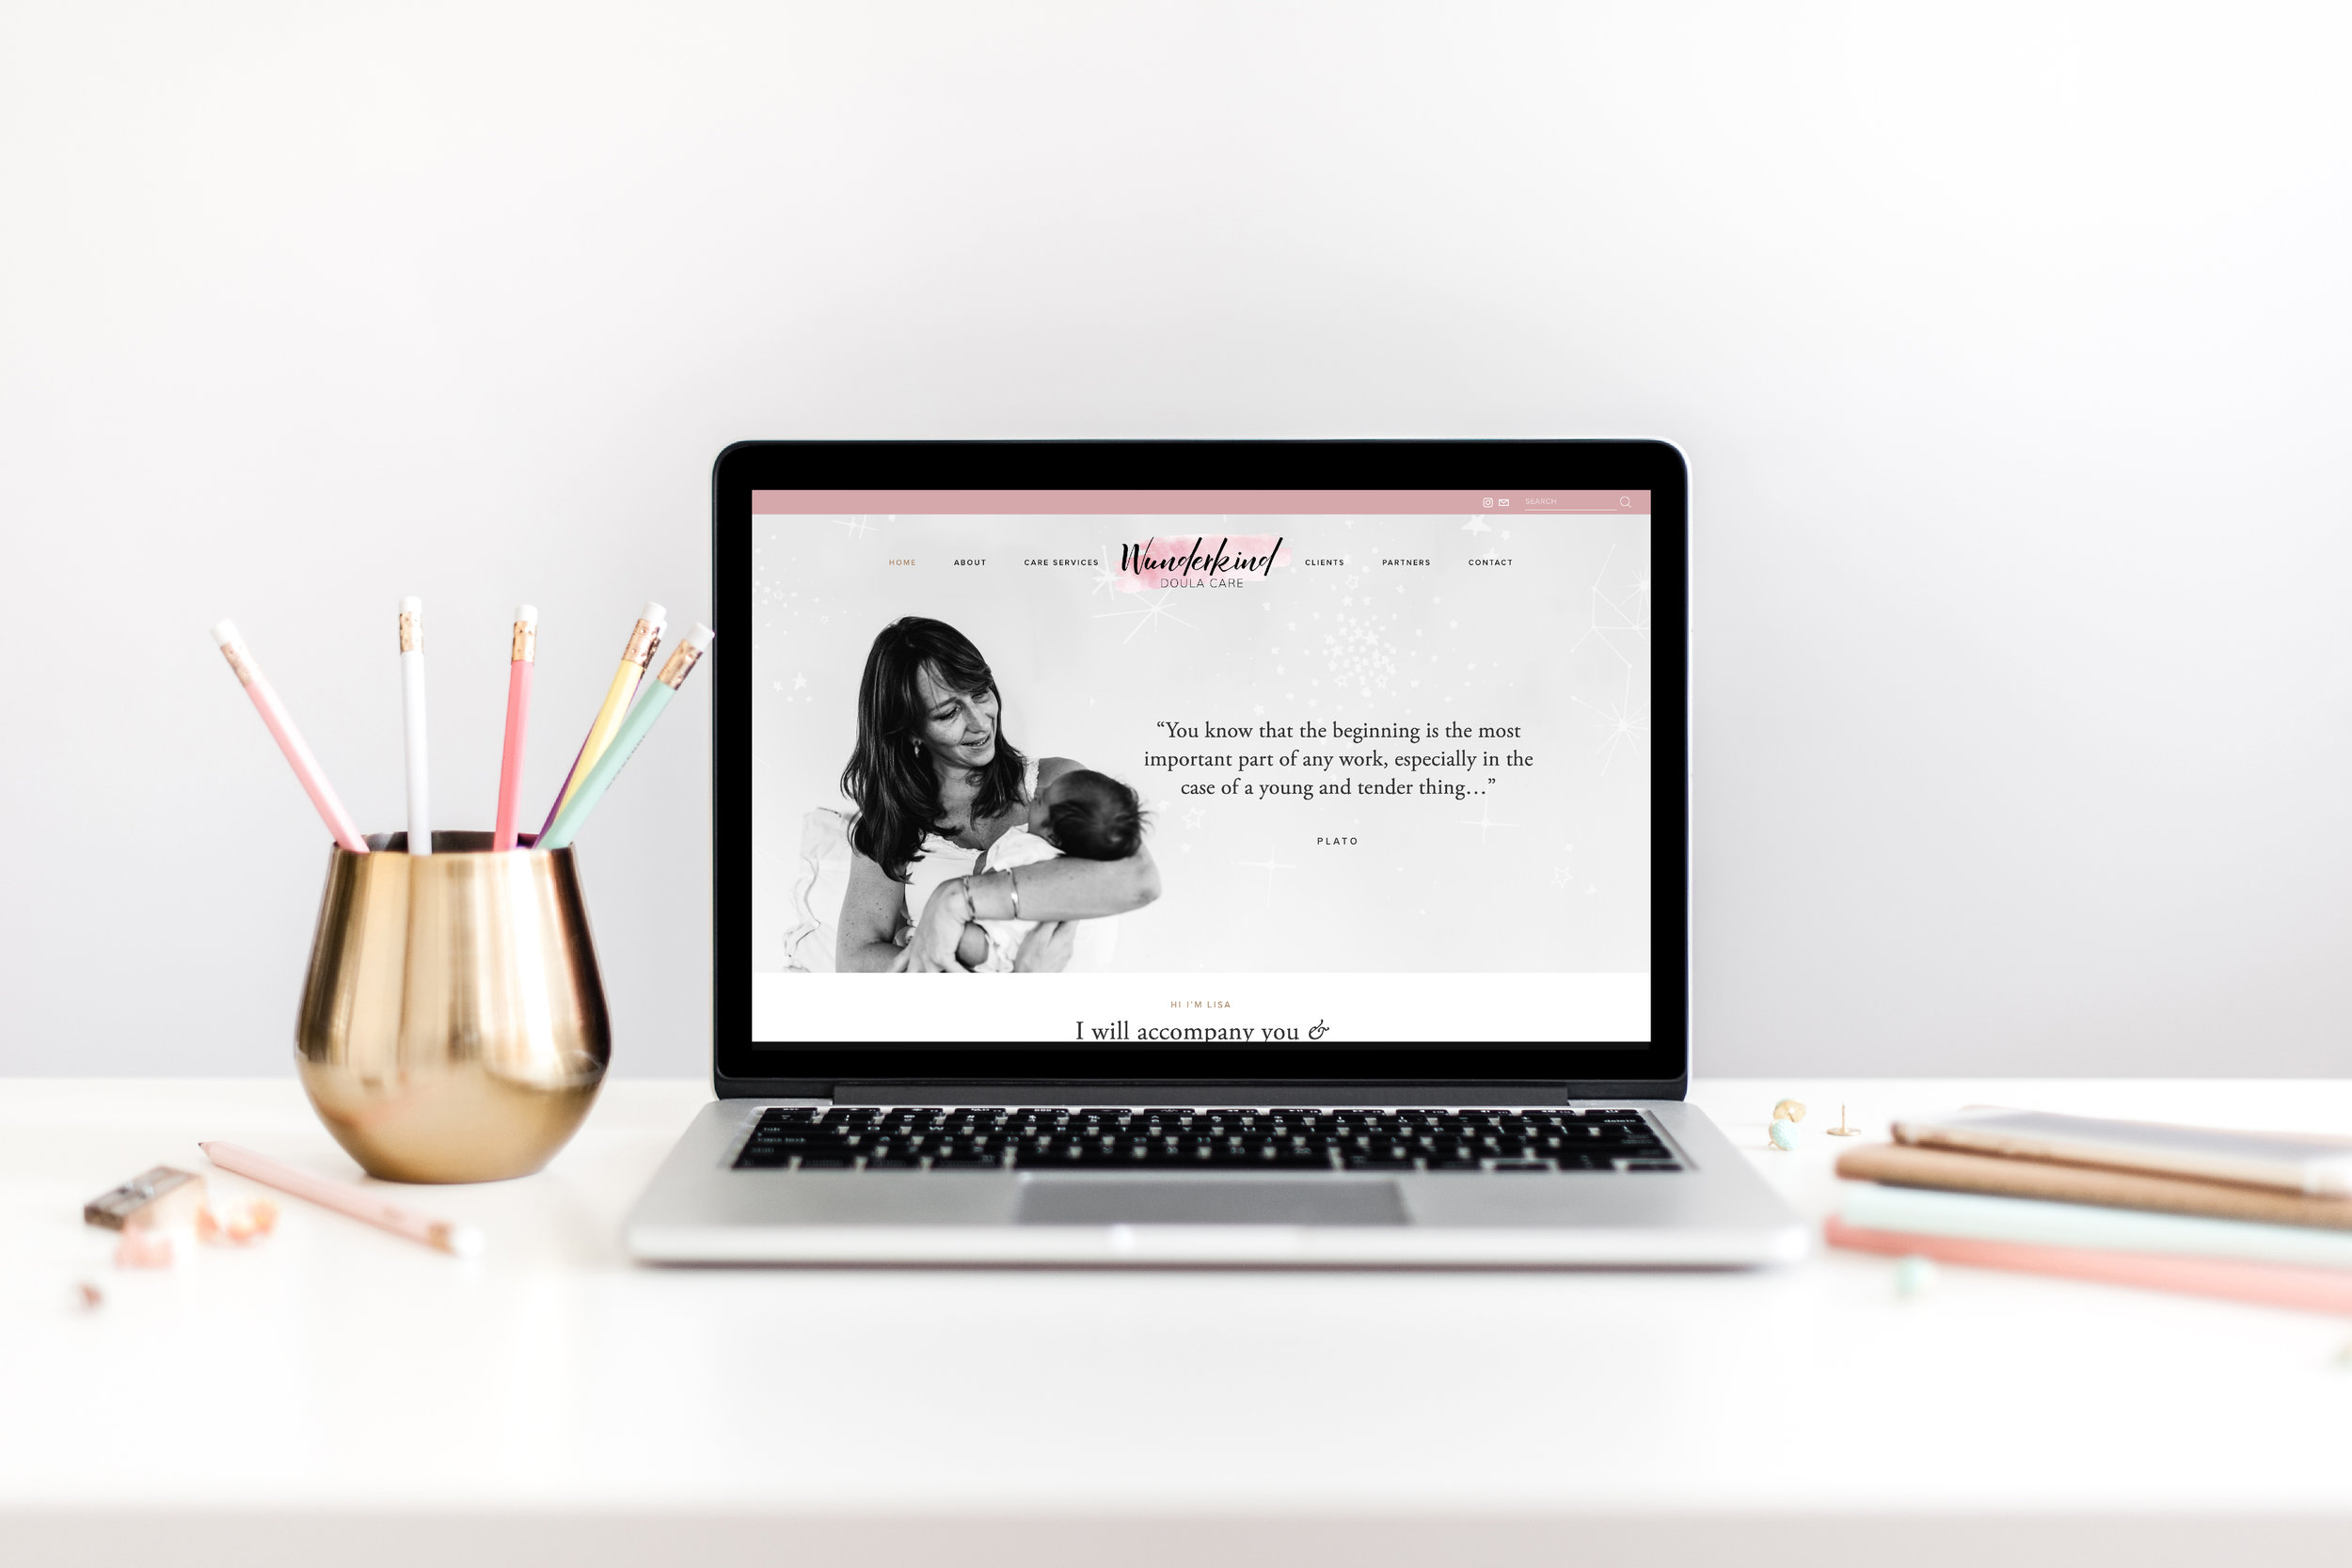 Wunderkind doula care: Branding + Website